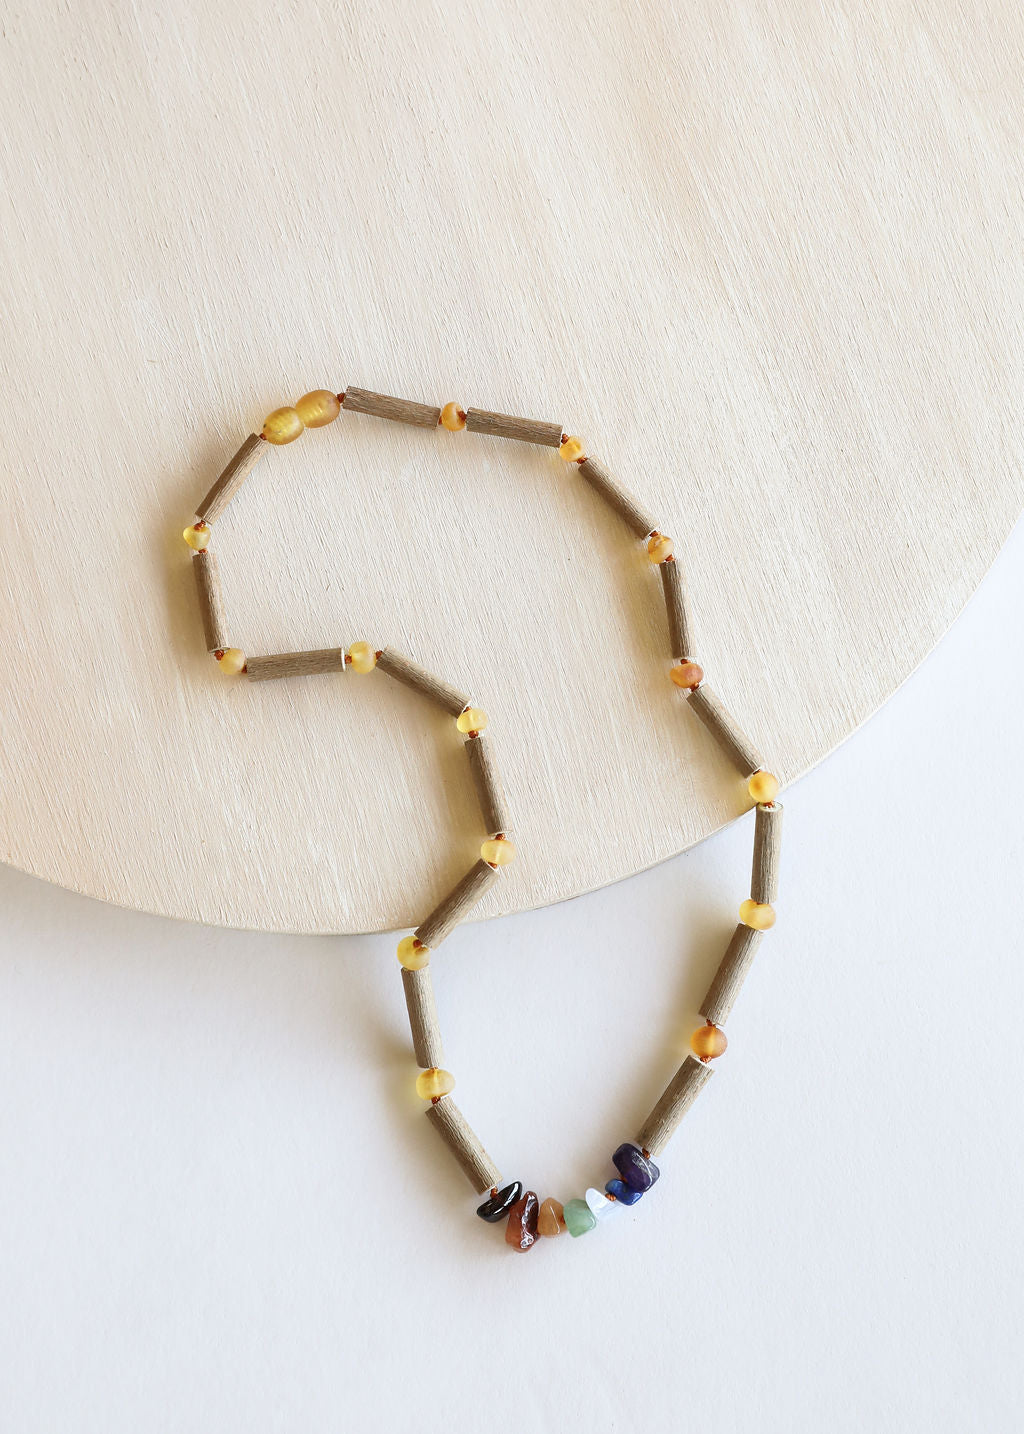 Hazelwood + Raw Chakra Crystal Necklace